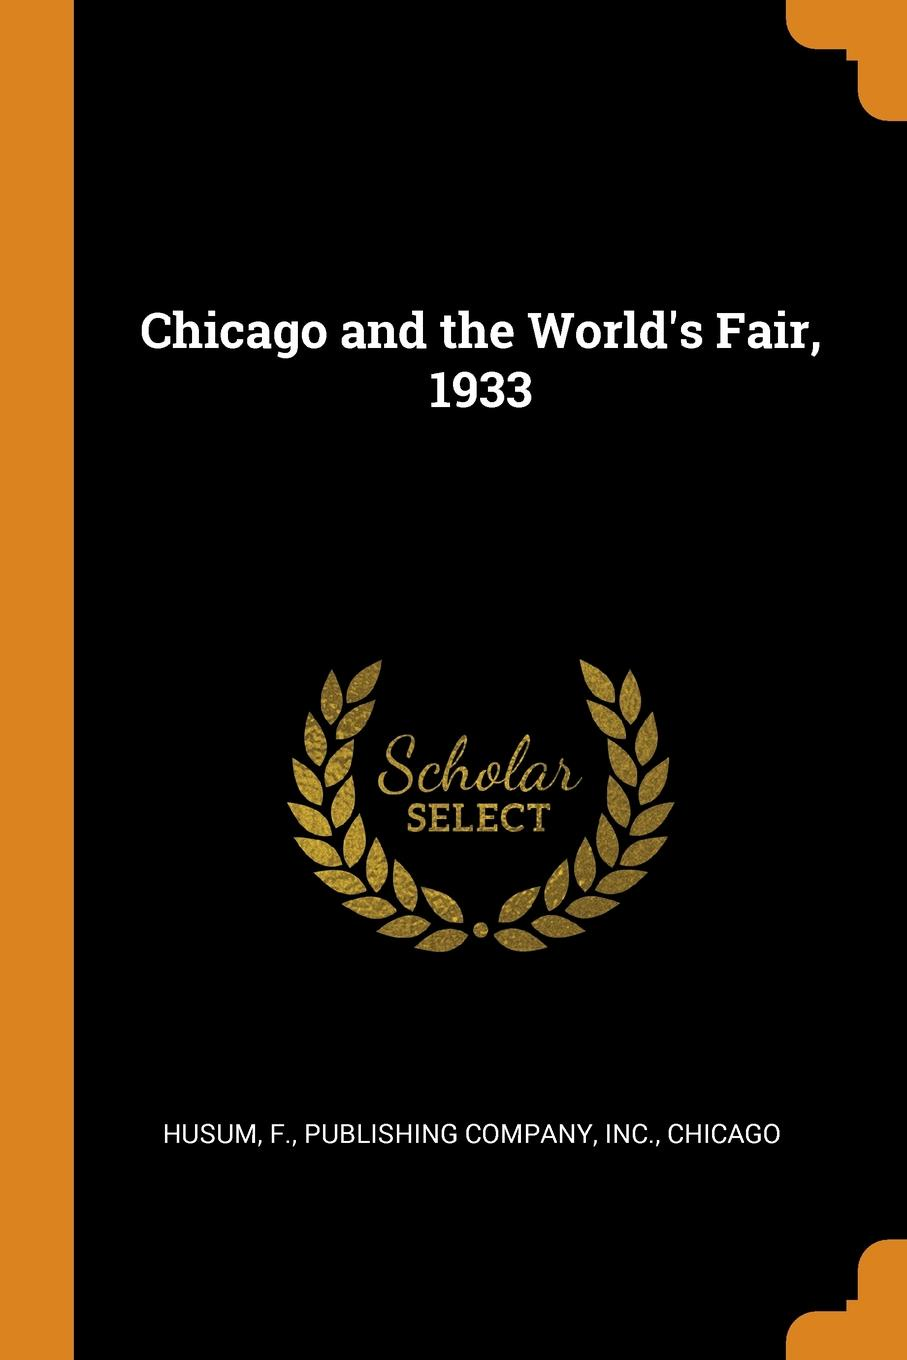 Chicago and the World.s Fair, 1933